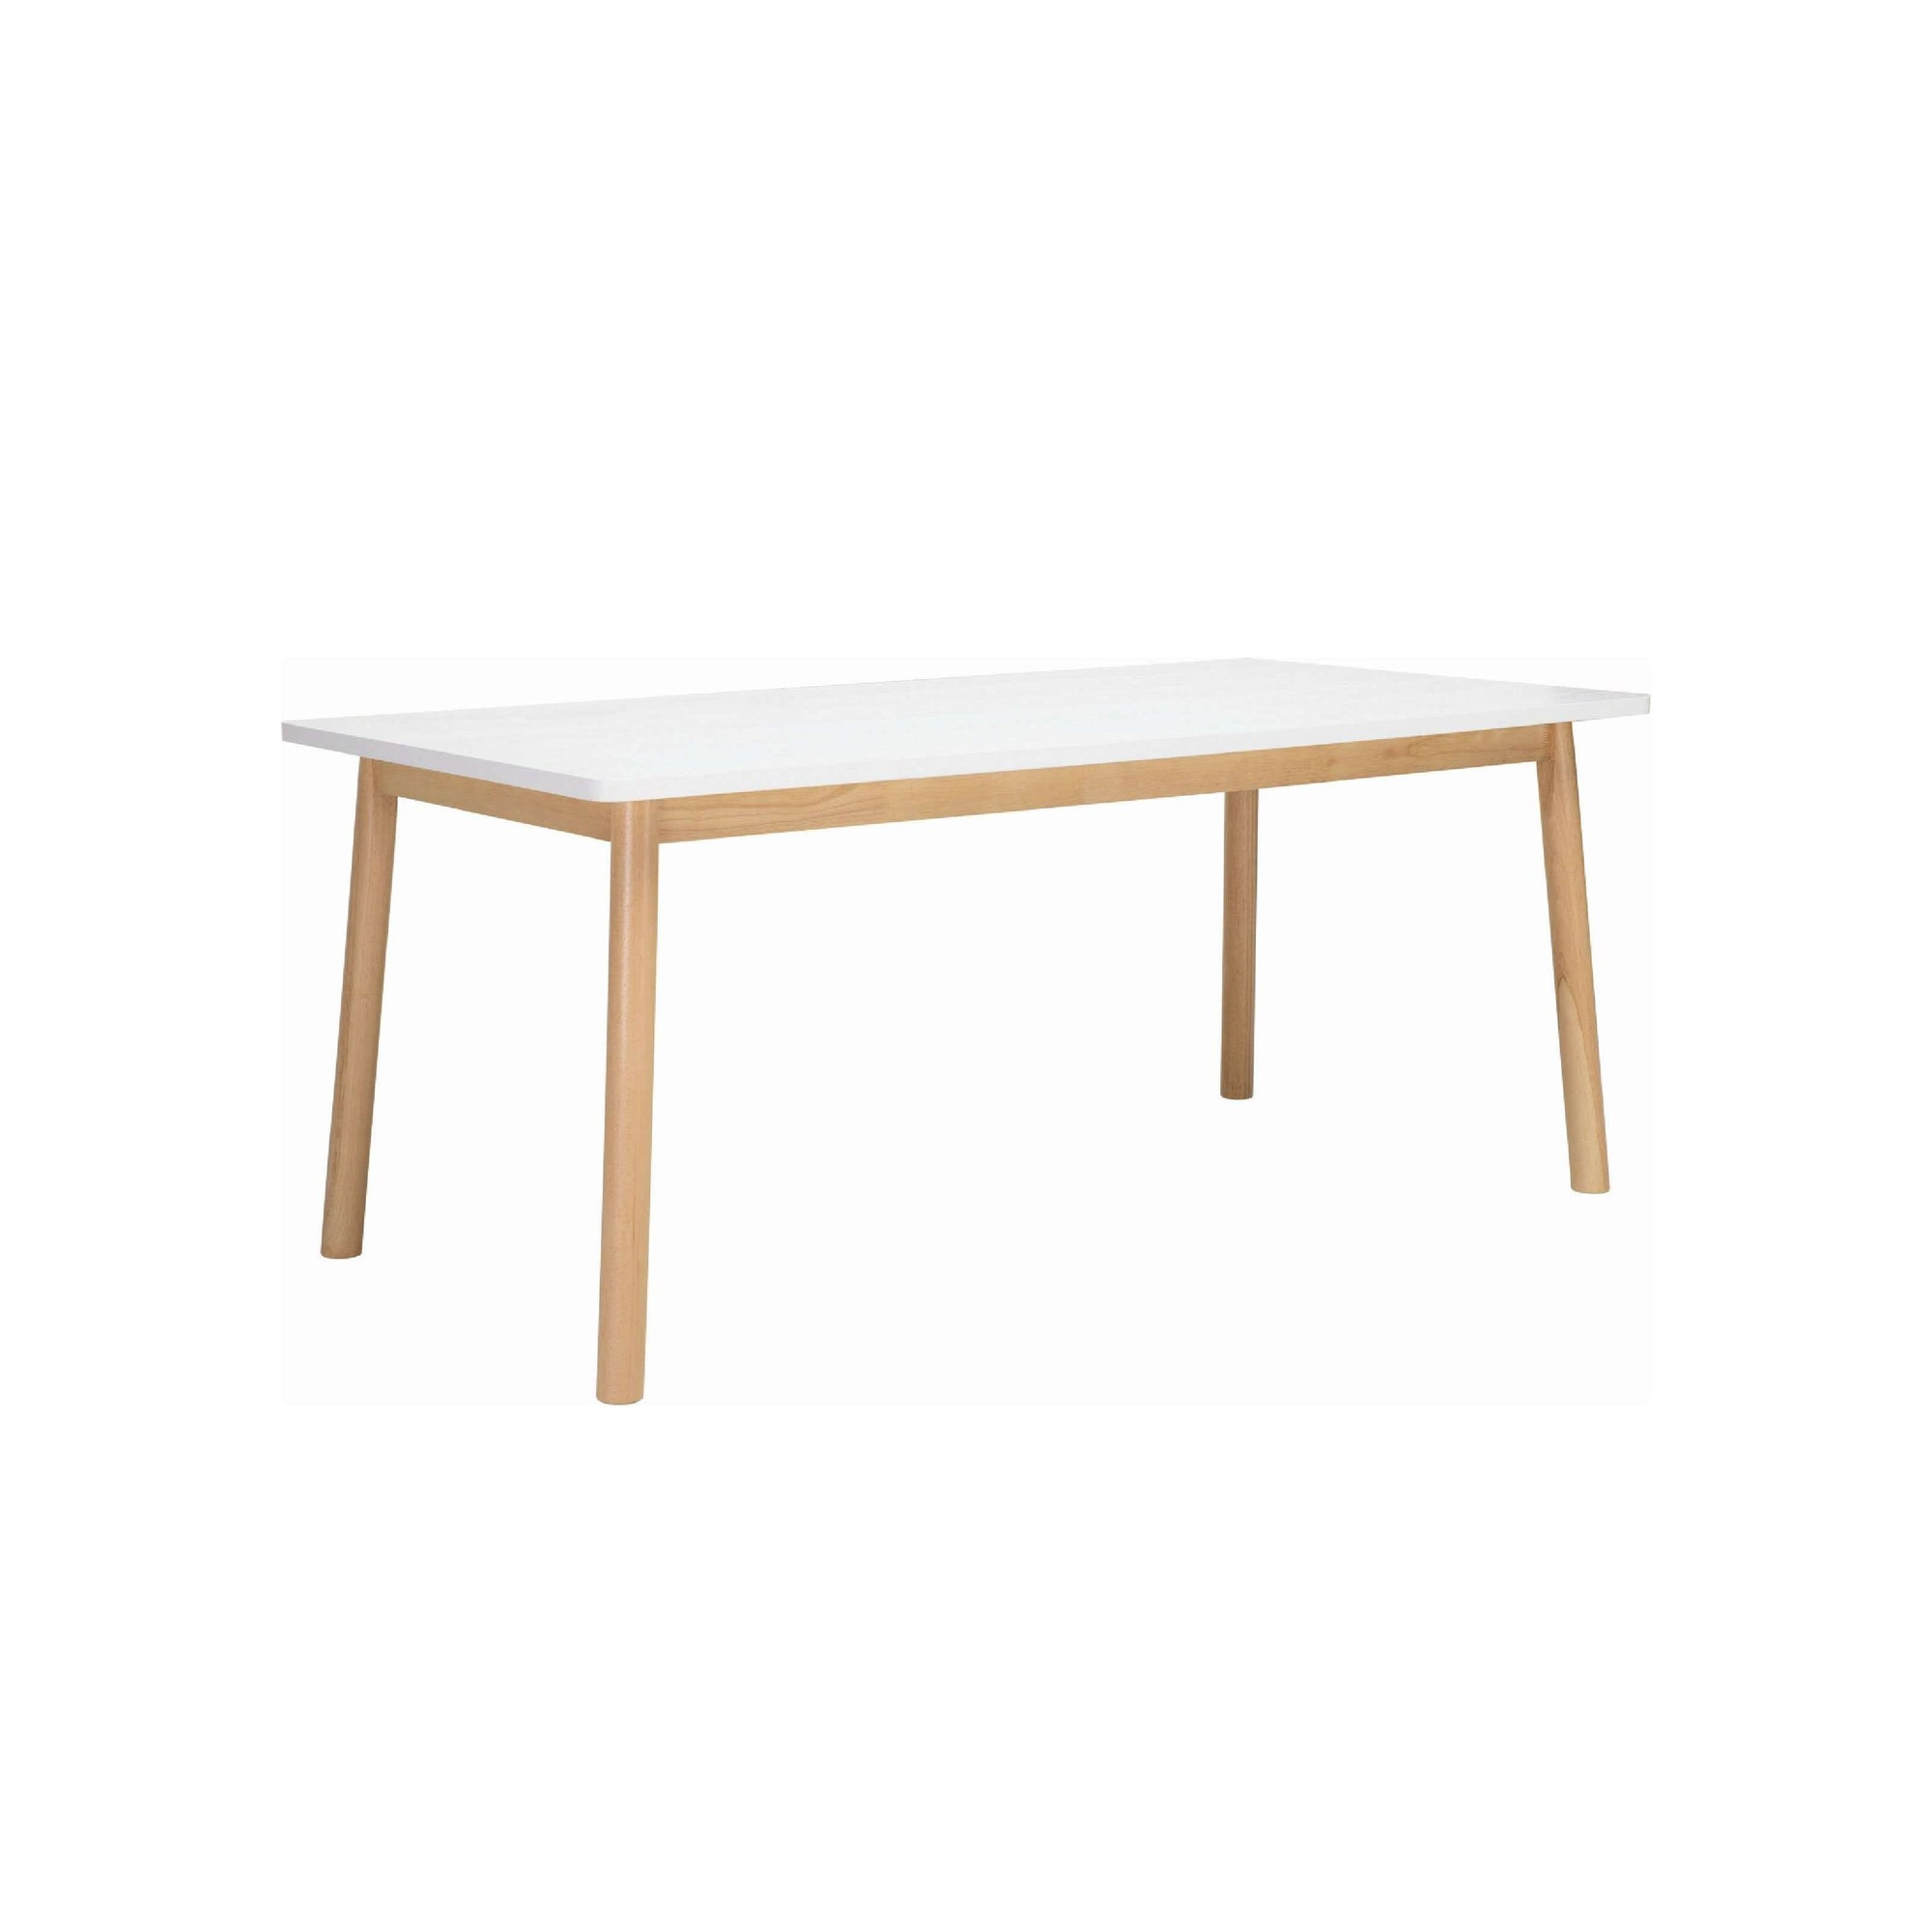 DEKEL 1.8M DINING TABLE IN NATURAL COLOUR LEG, WHITE LACQUERED TOP